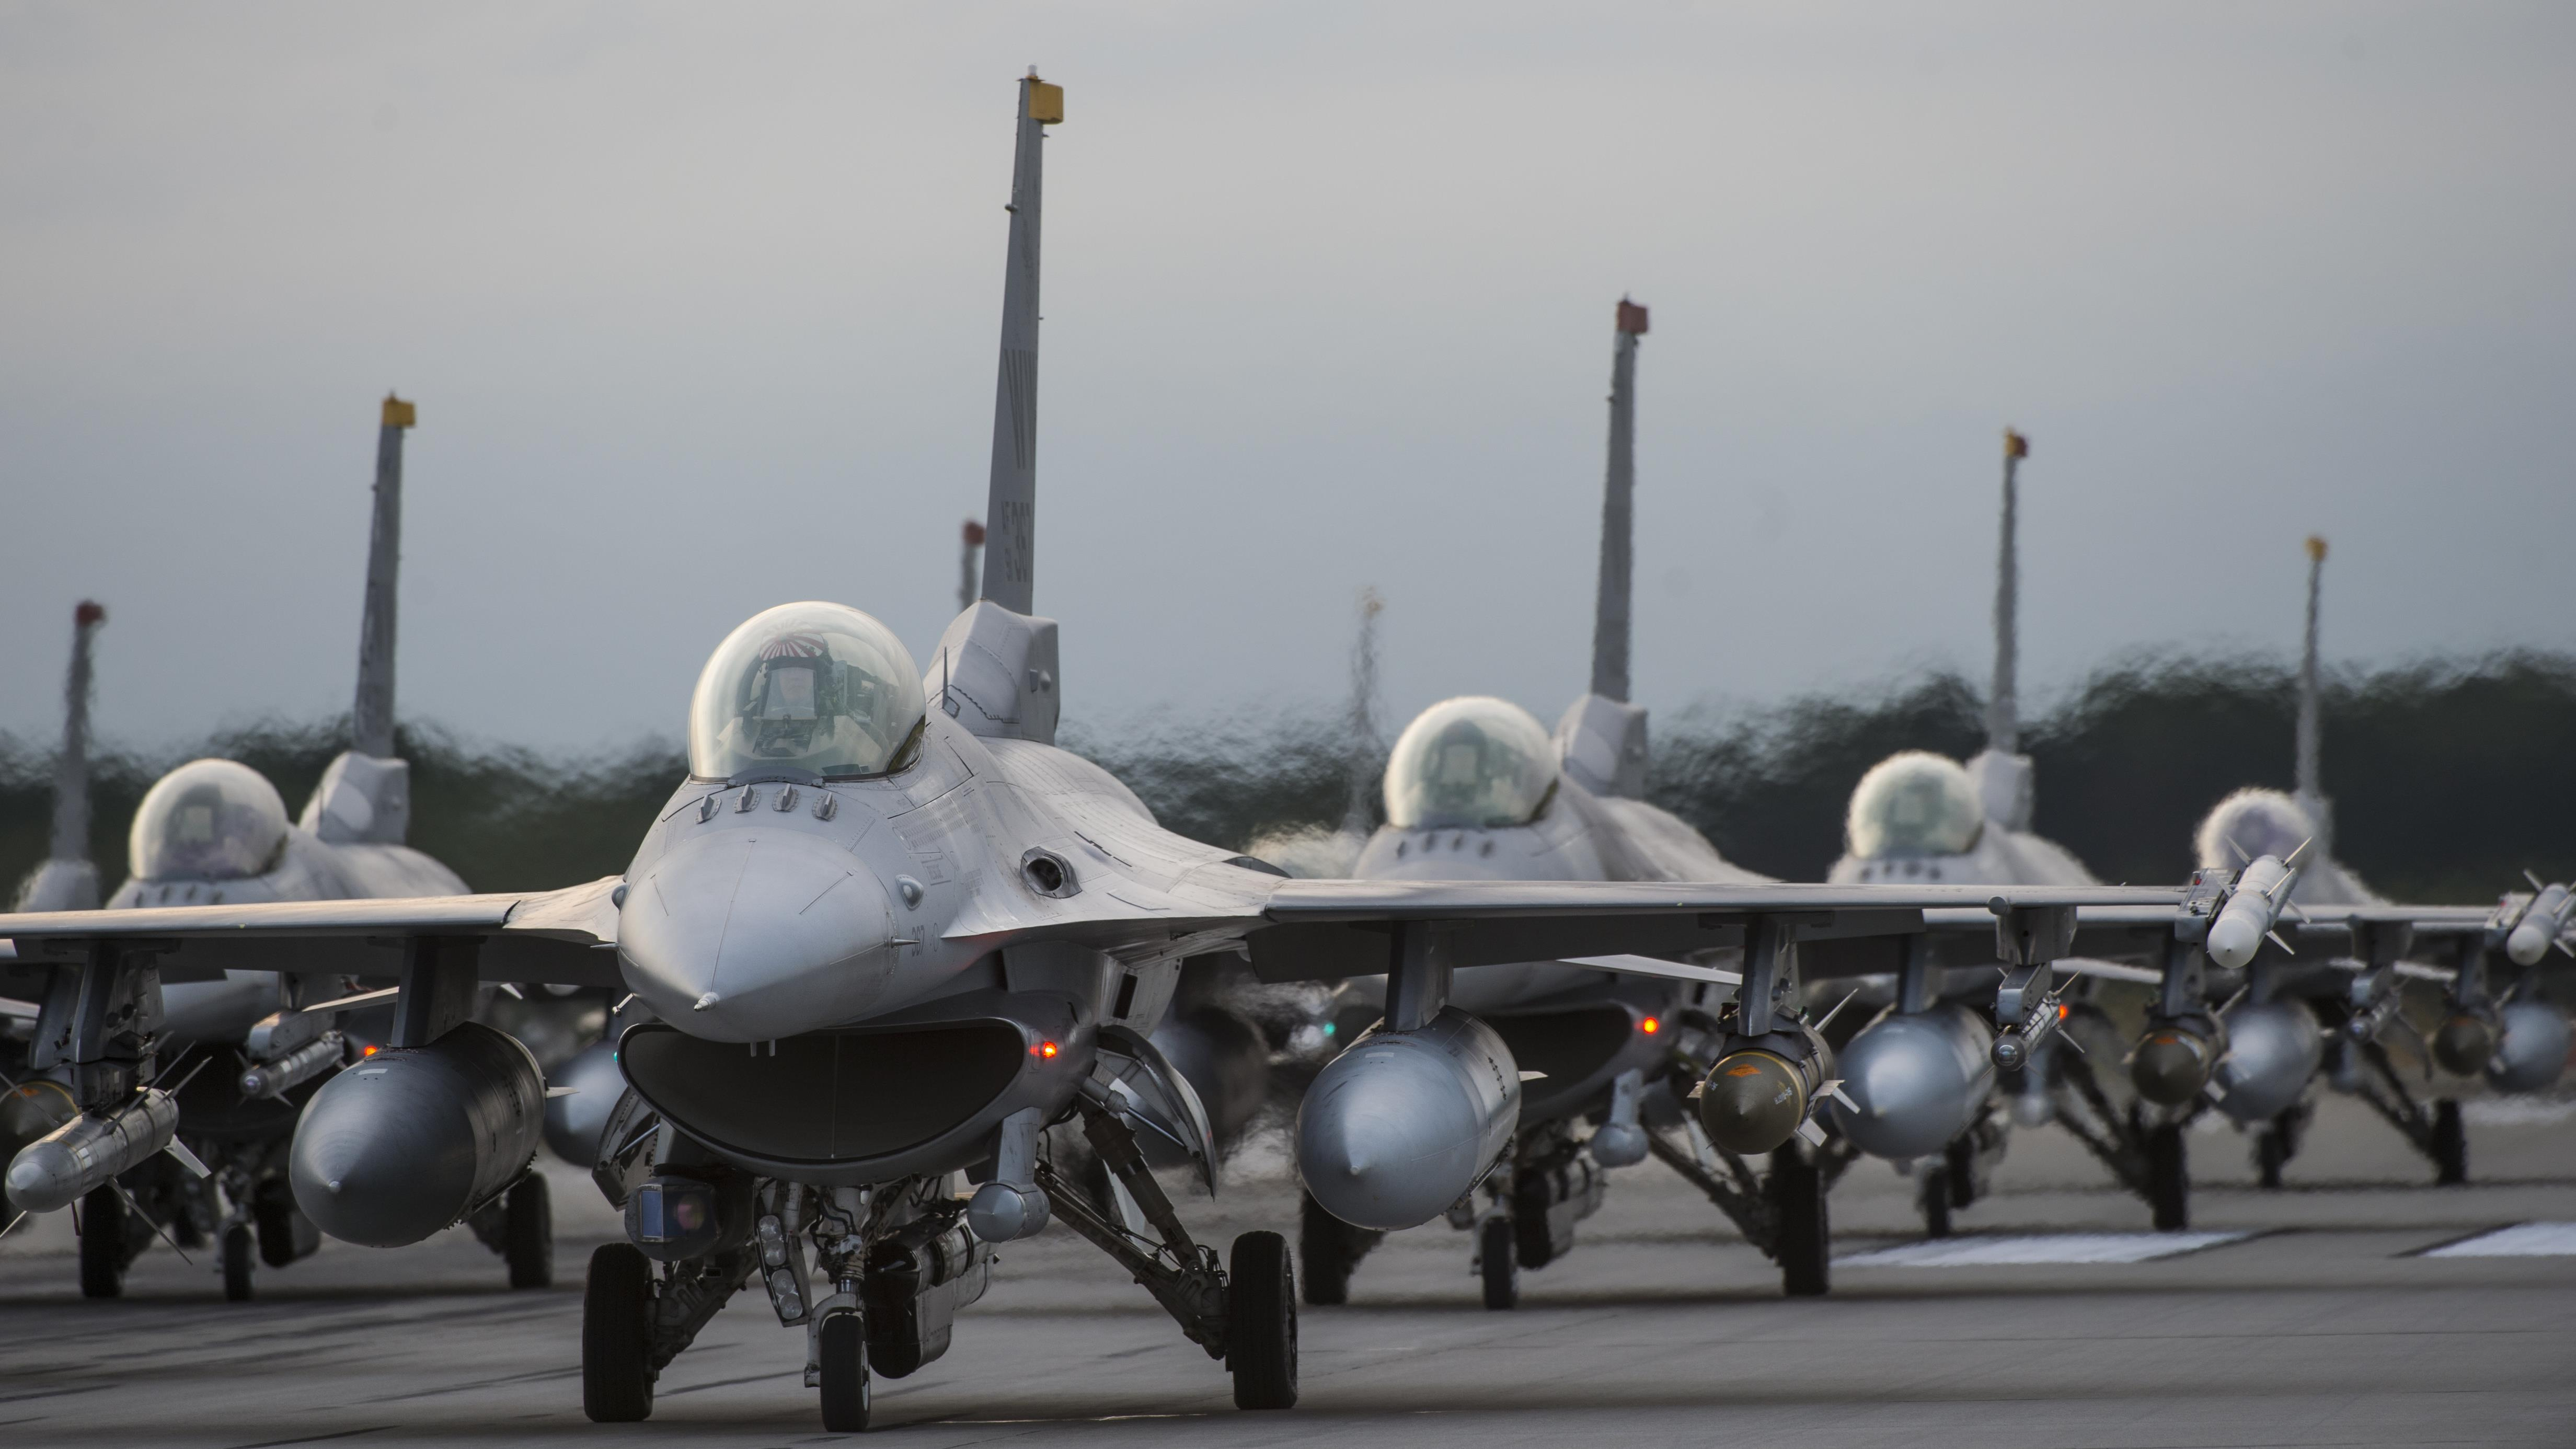 U.S. Air Force F-16 Fighting Falcons from the 13th and 14th Fighter Squadrons, take part in an elephant walk in support of exercise Beverly Sunrise 17-07 at Misawa Air Base, Japan, Sept. 16, 2017. The exercise was a simulated deployment to test the readiness of the 35th Fighter Wing, and assessed their ability to meet deployment and wartime requirements. (U.S. Air Force photo by Staff Sgt. Deana Heitzman)